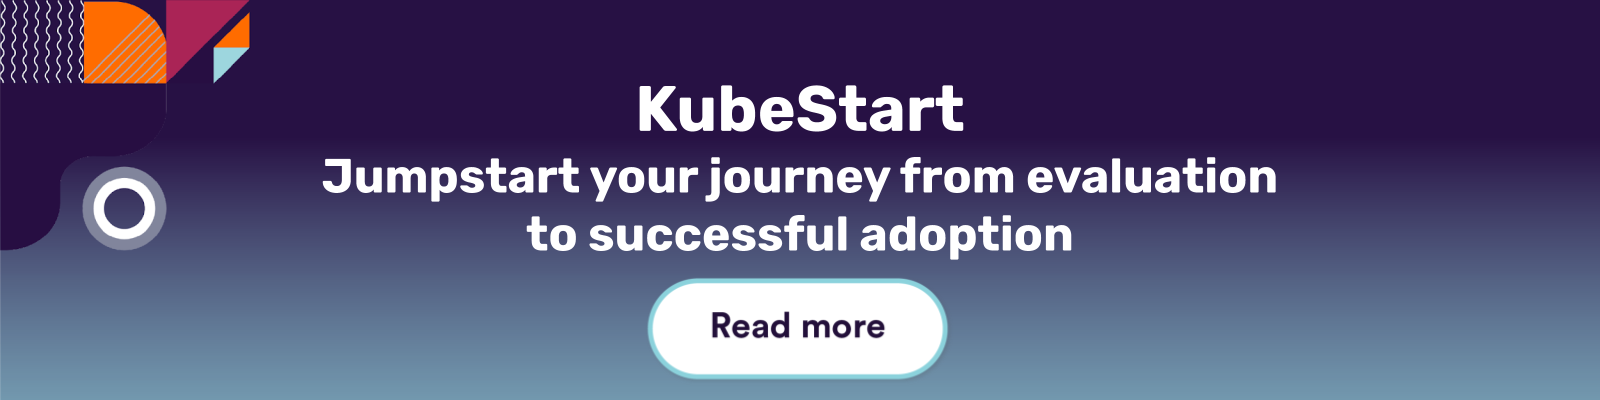 KubeStart. Jumpstart your journey from evaluation to successful adoption. Read more.